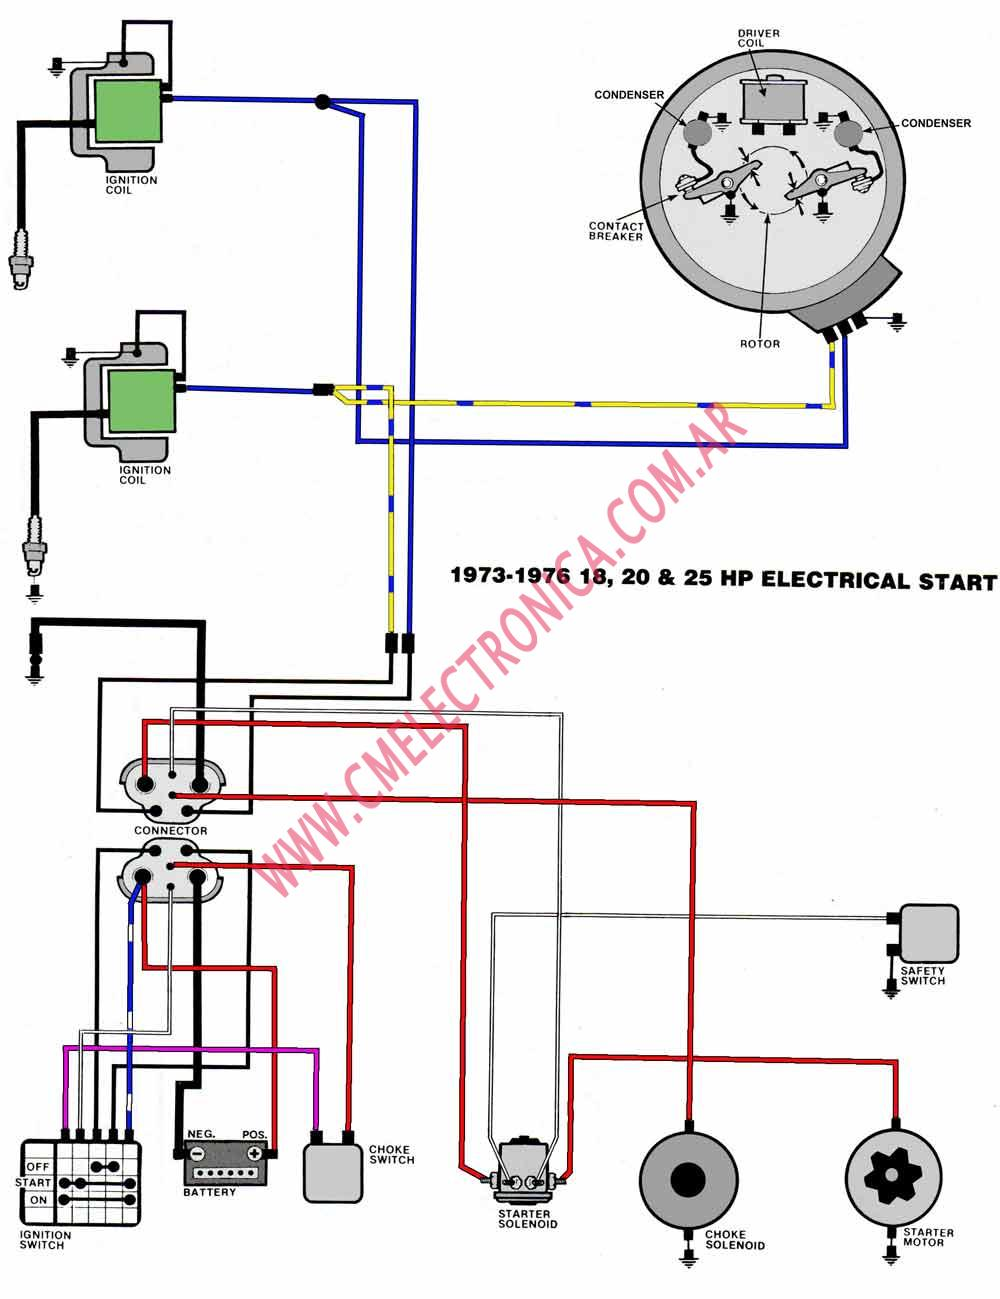 hight resolution of 1973 evinrude 135 wiring diagram get free image about evinrude outboard motor wiring diagram marine ignition